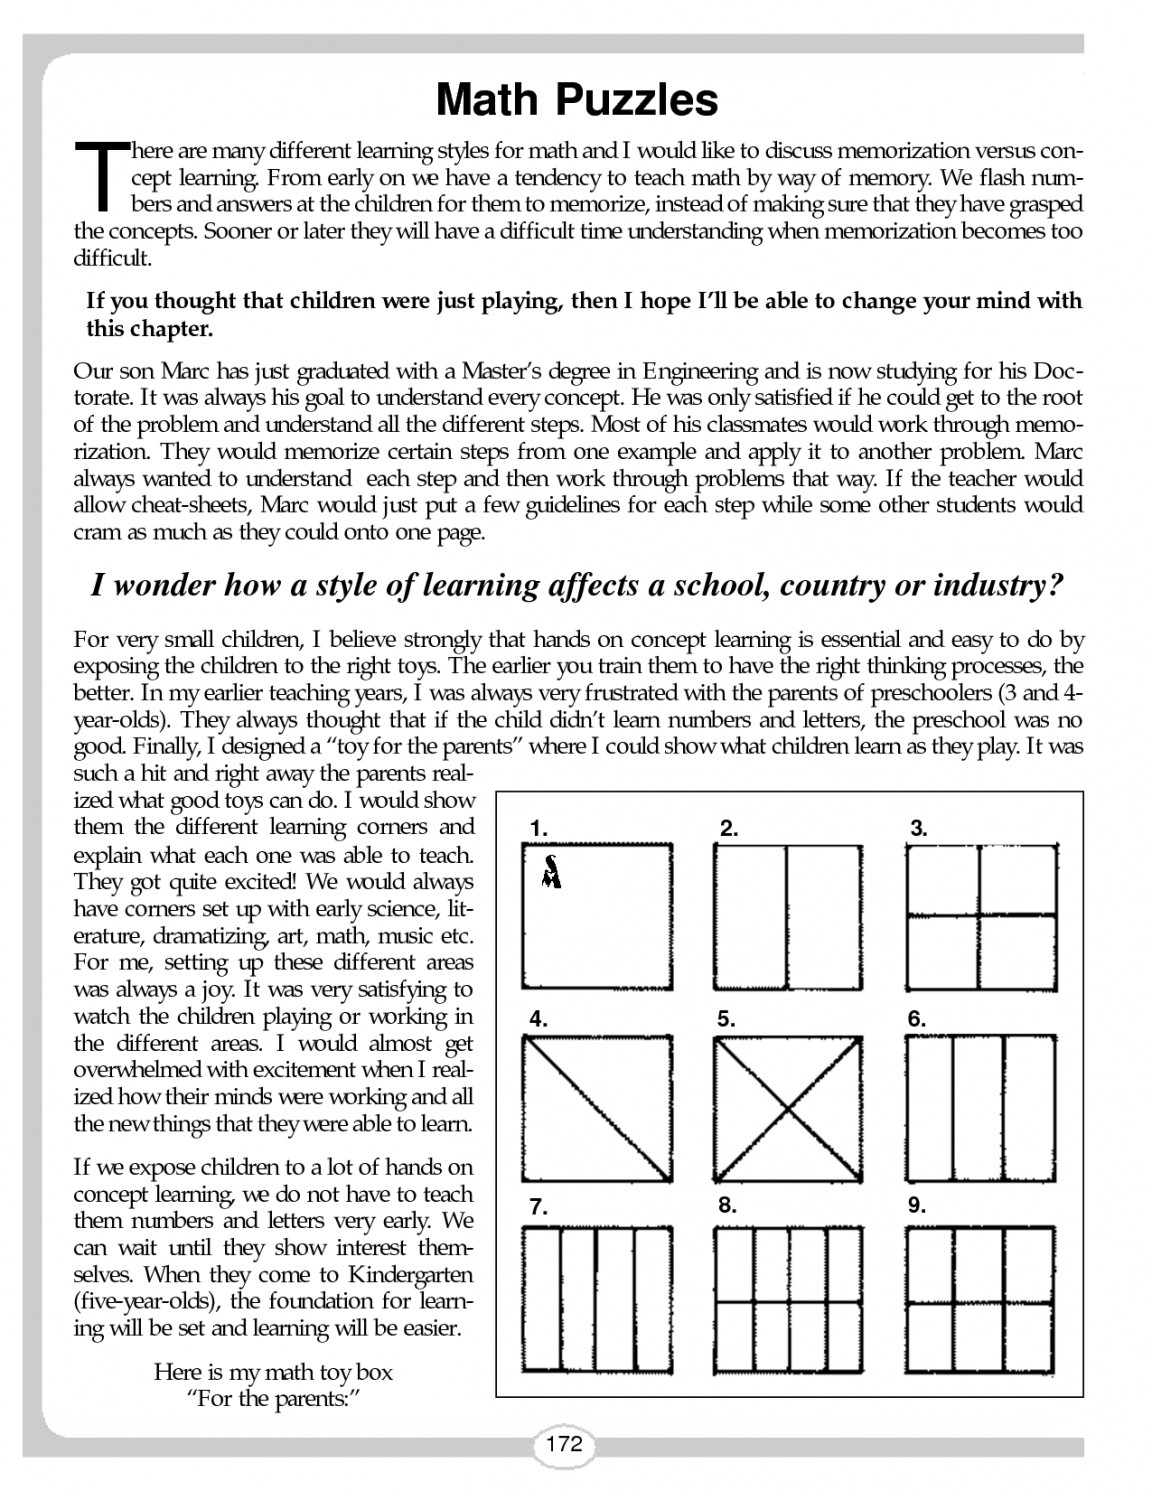 Printable Logic Puzzles For Middle School New Crossword Thanksgiving - Printable Logic Puzzles For Middle School